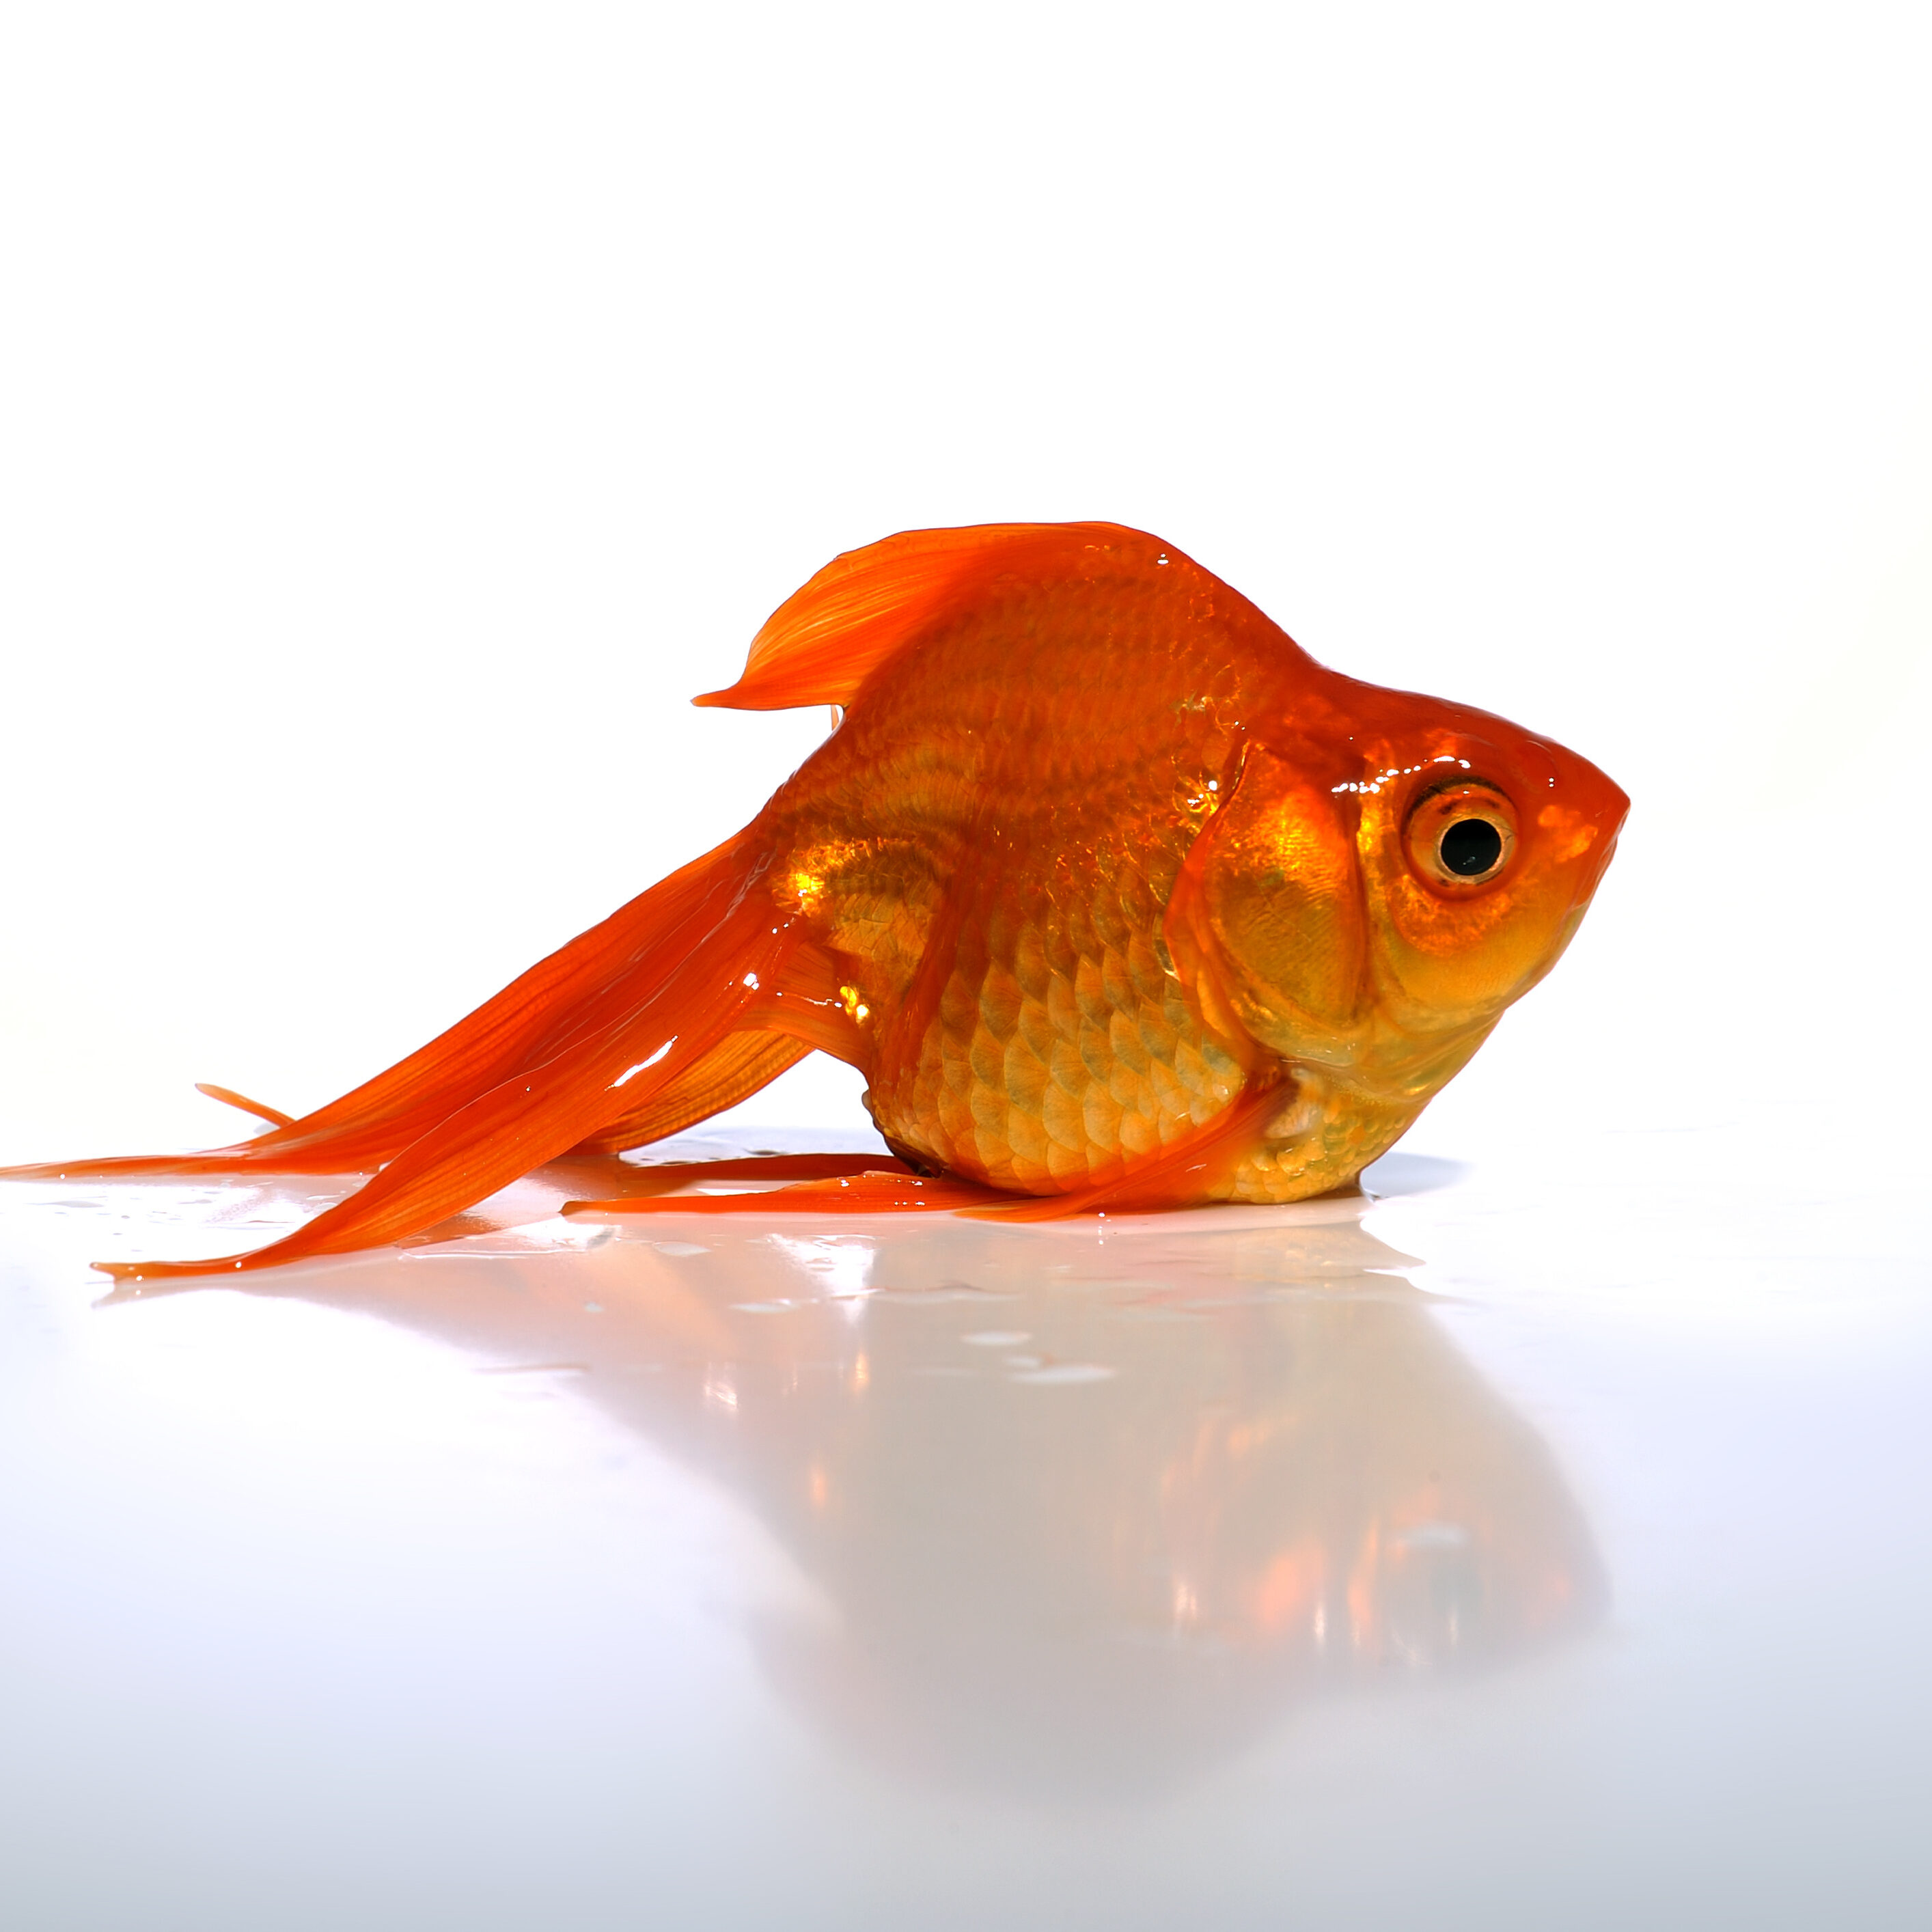 Goldfish standing on a white table